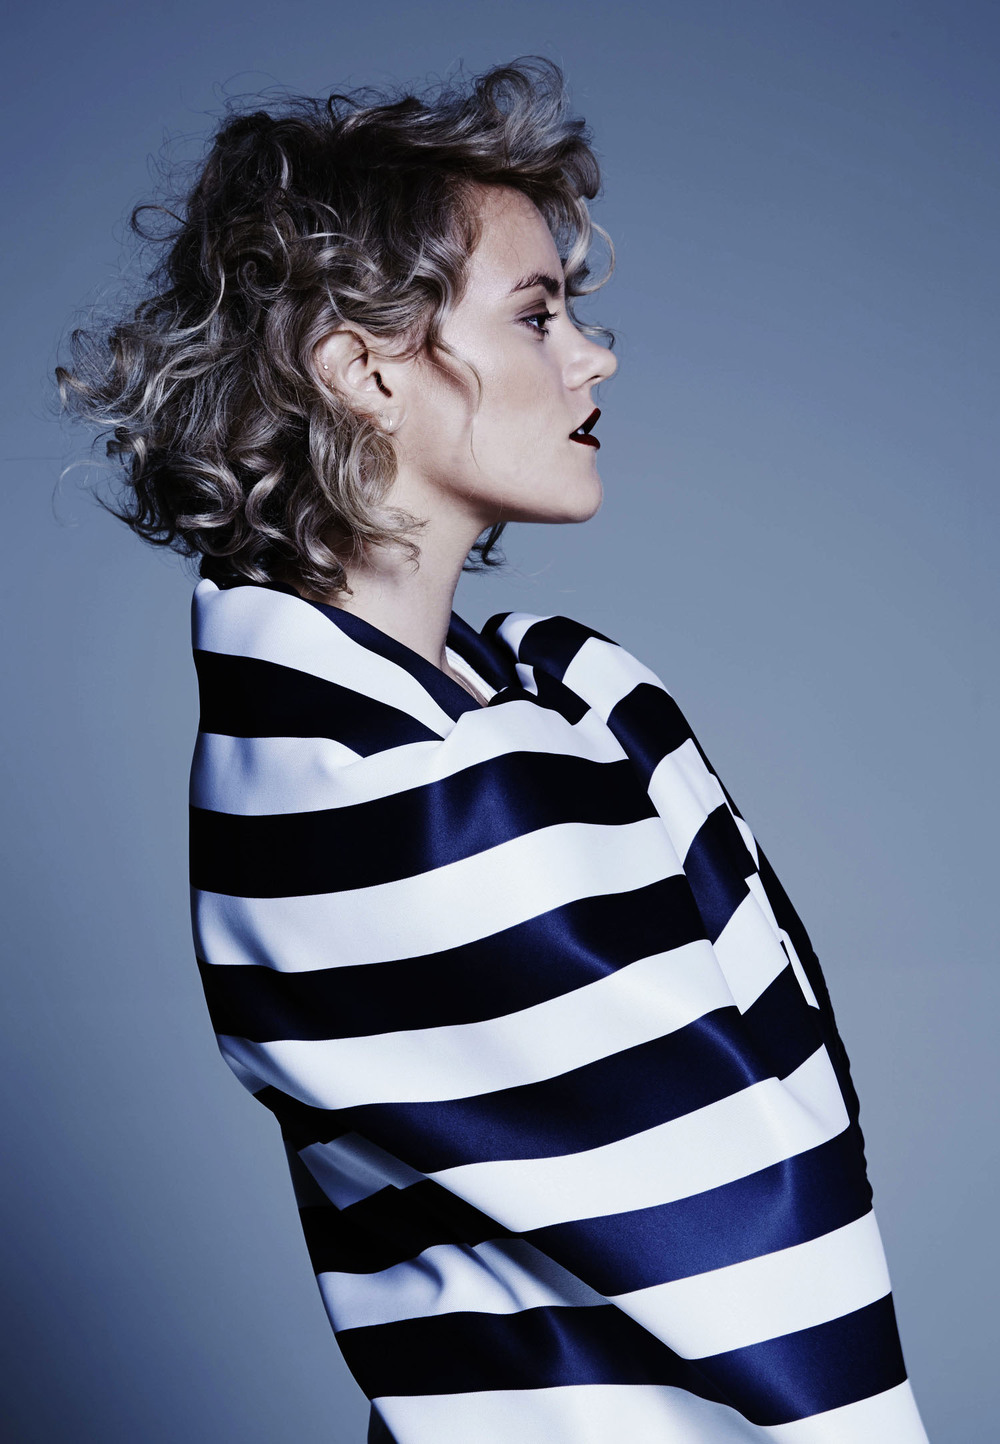 INTERVIEW: 3 DATING TIPS WITH TAYA SMITH - Milk & Honey